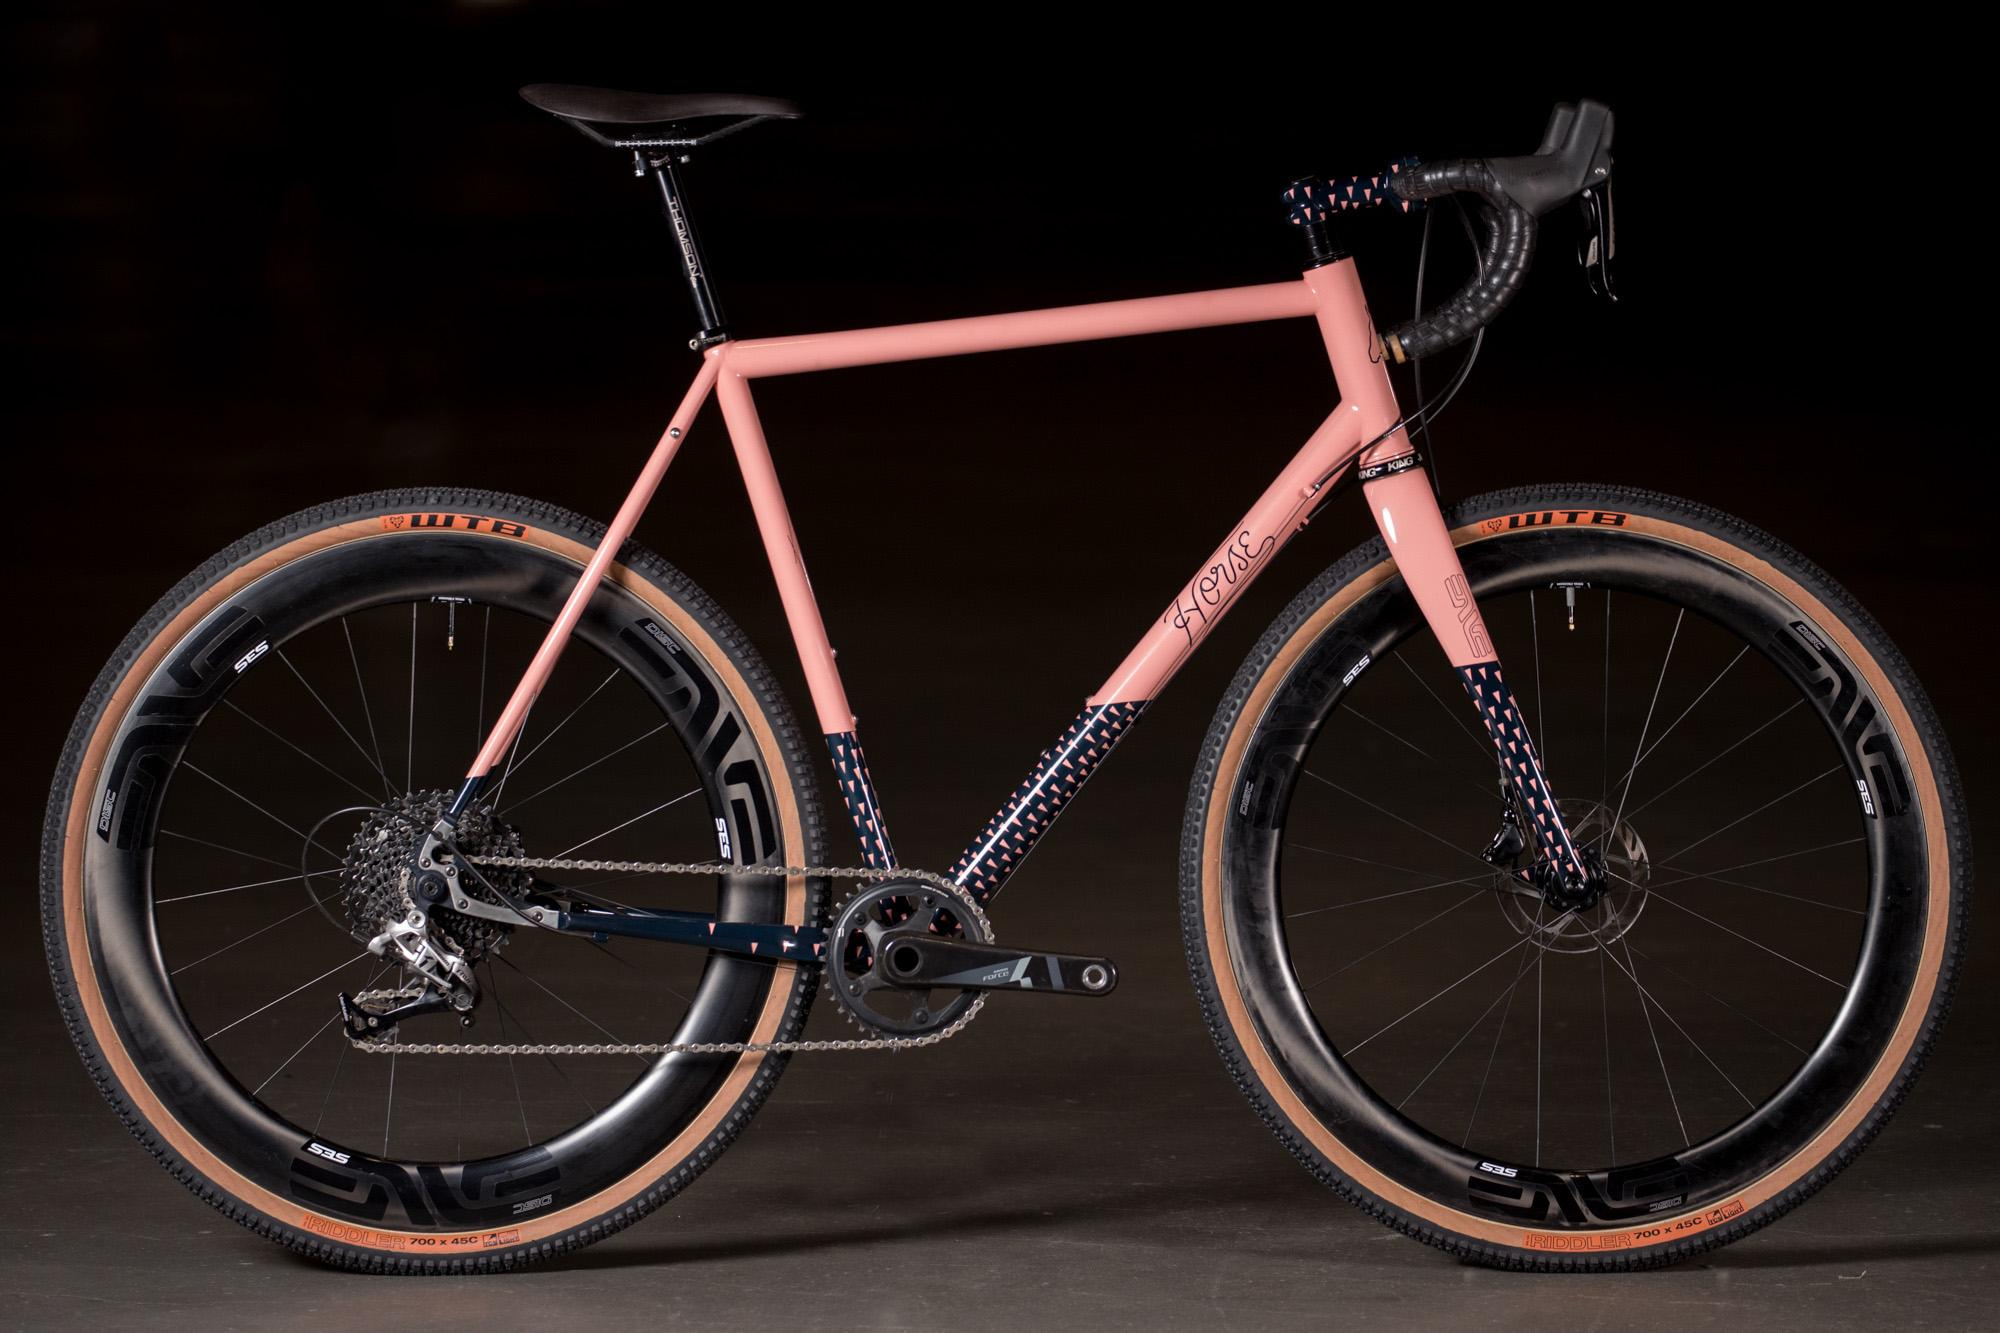 2018 NAHBS: Horse Cycles Road Bike